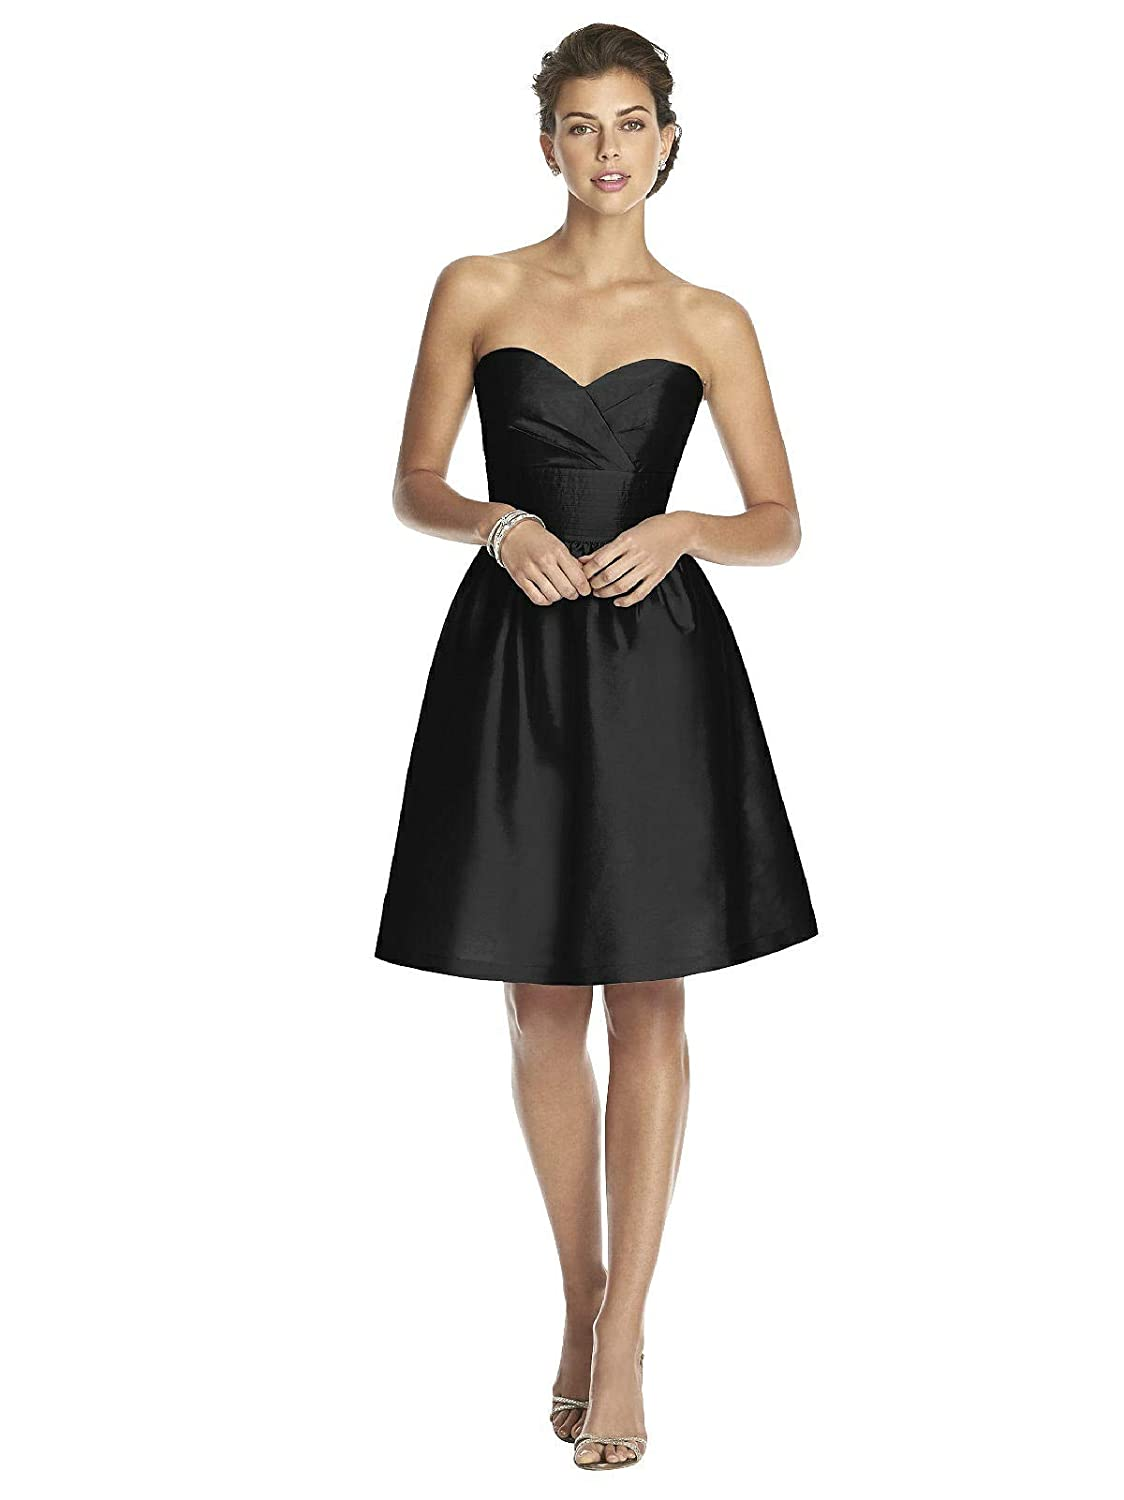 Size 10 Alfred Sung Womens Strapless Cocktail Length Peau De Soie Dress by Black